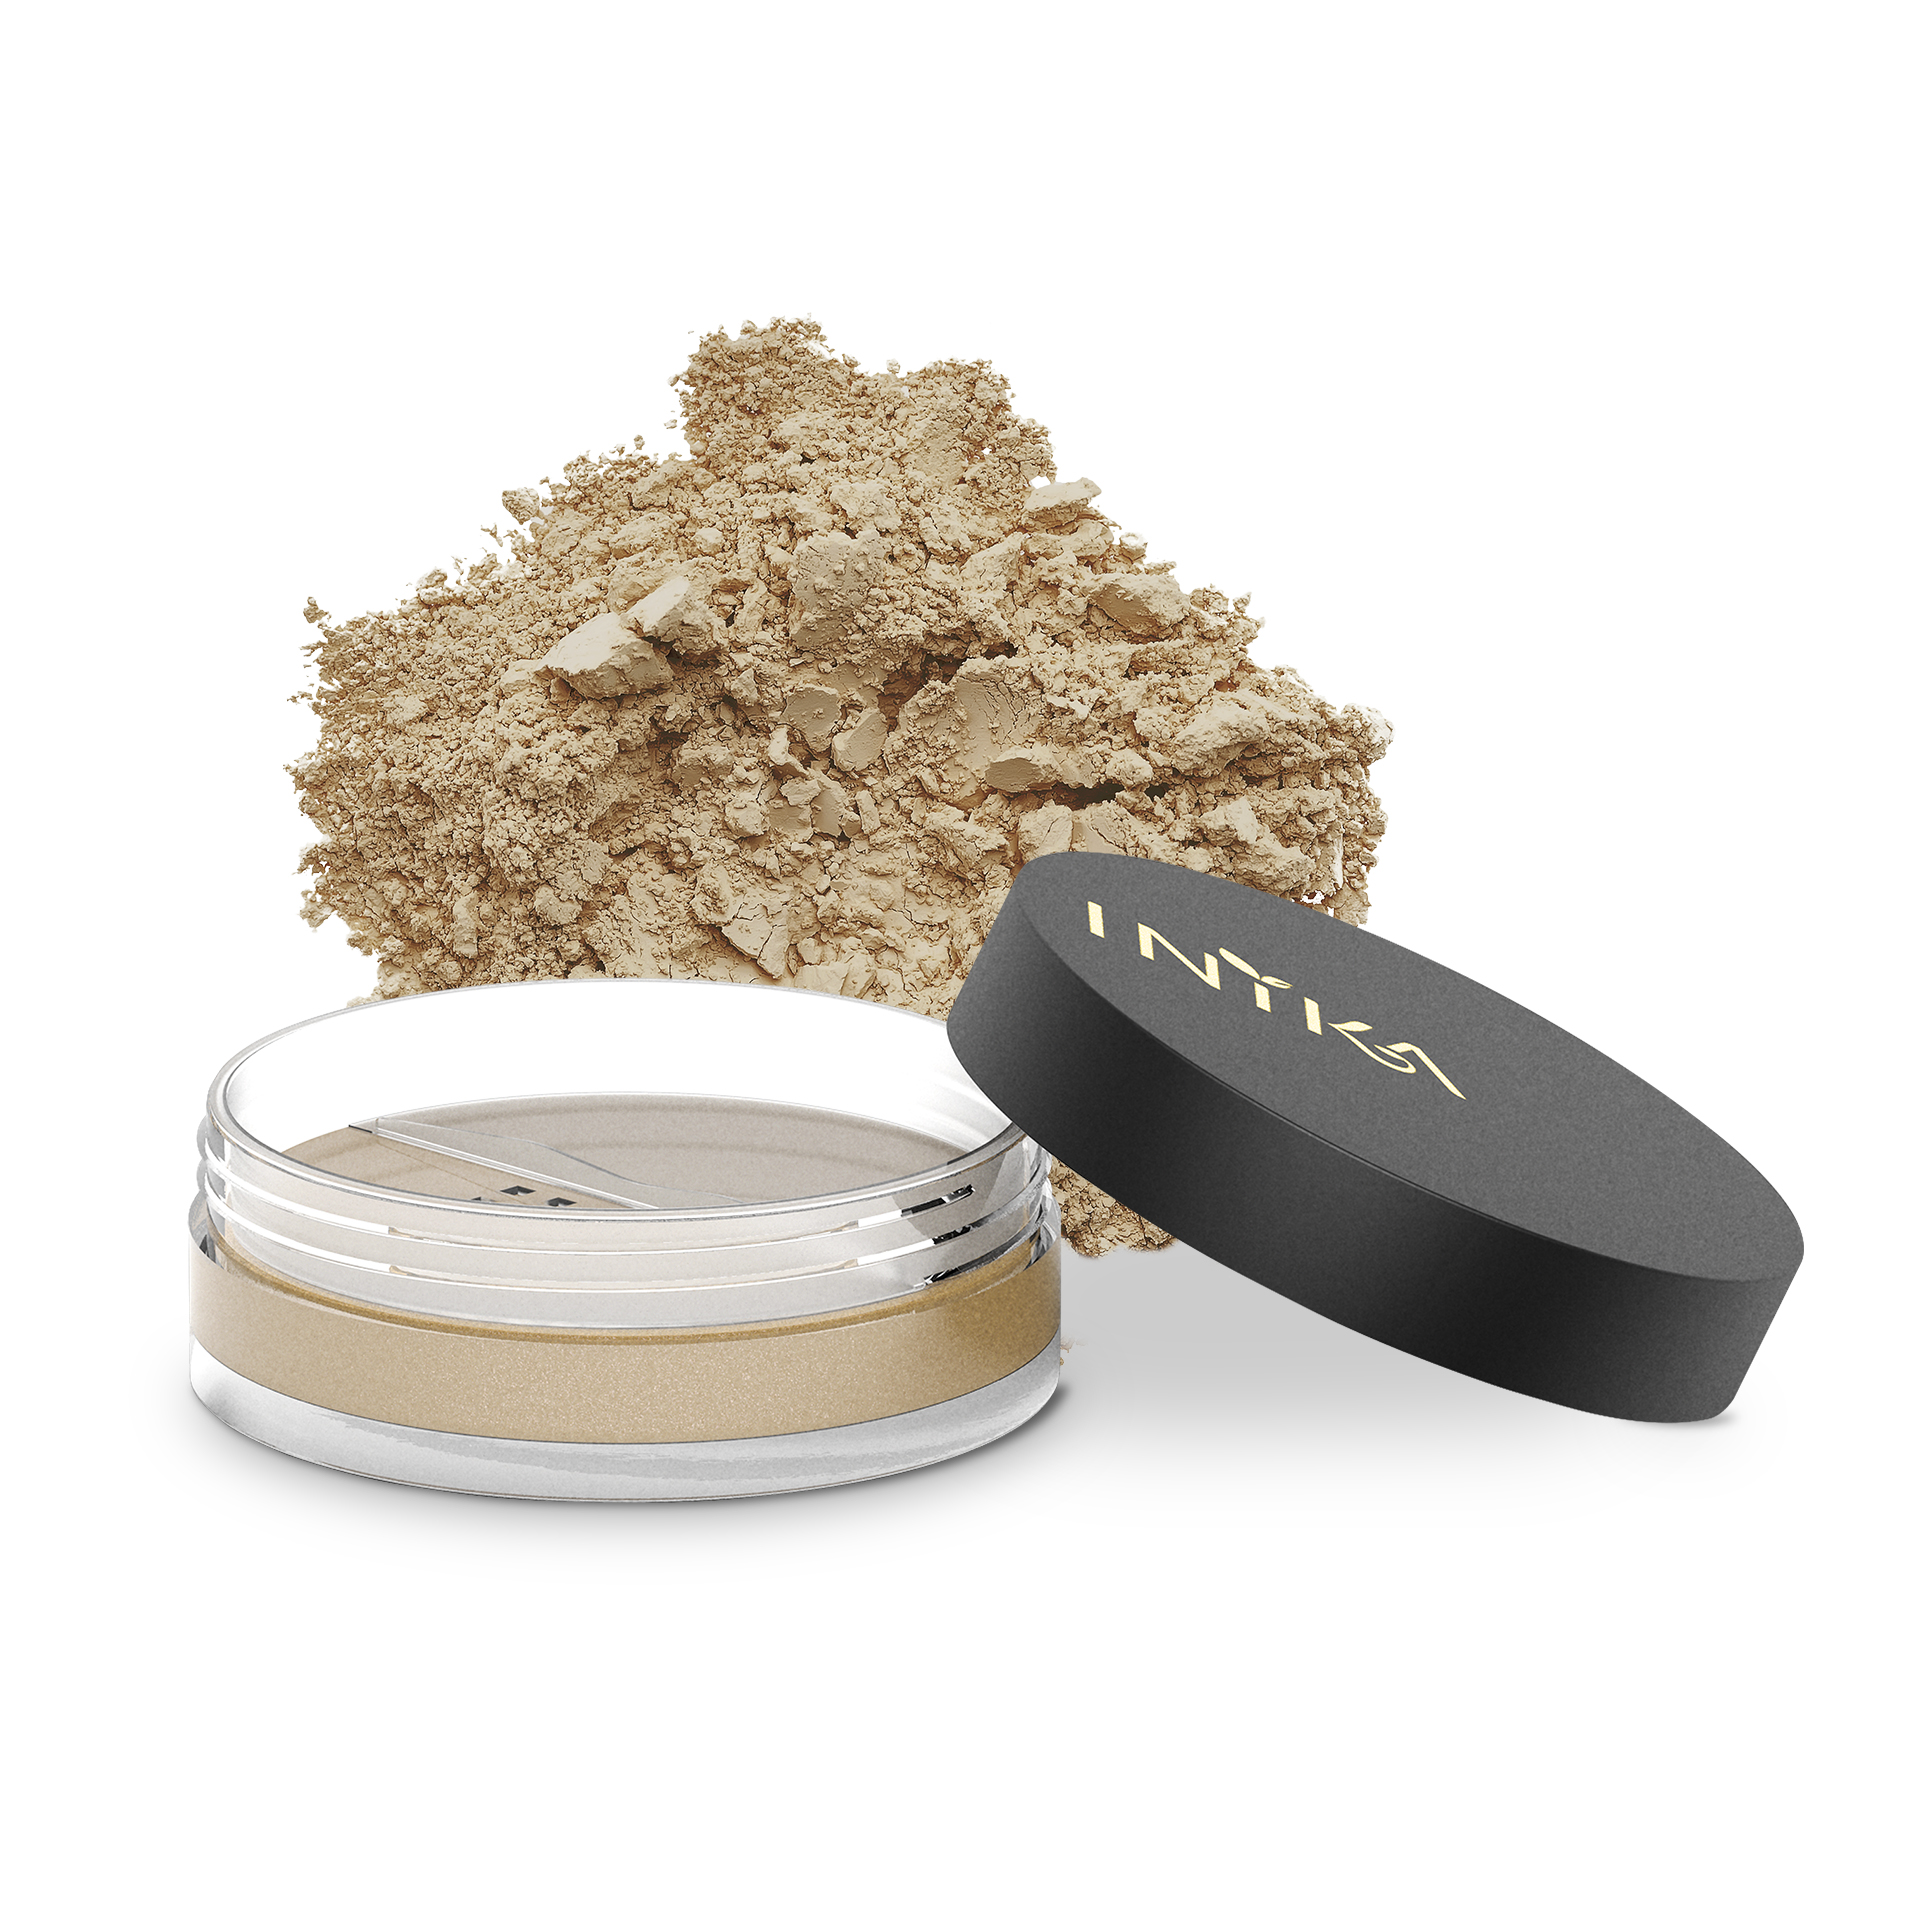 INIKA Loose Mineral Foundation 8g Trust With Product